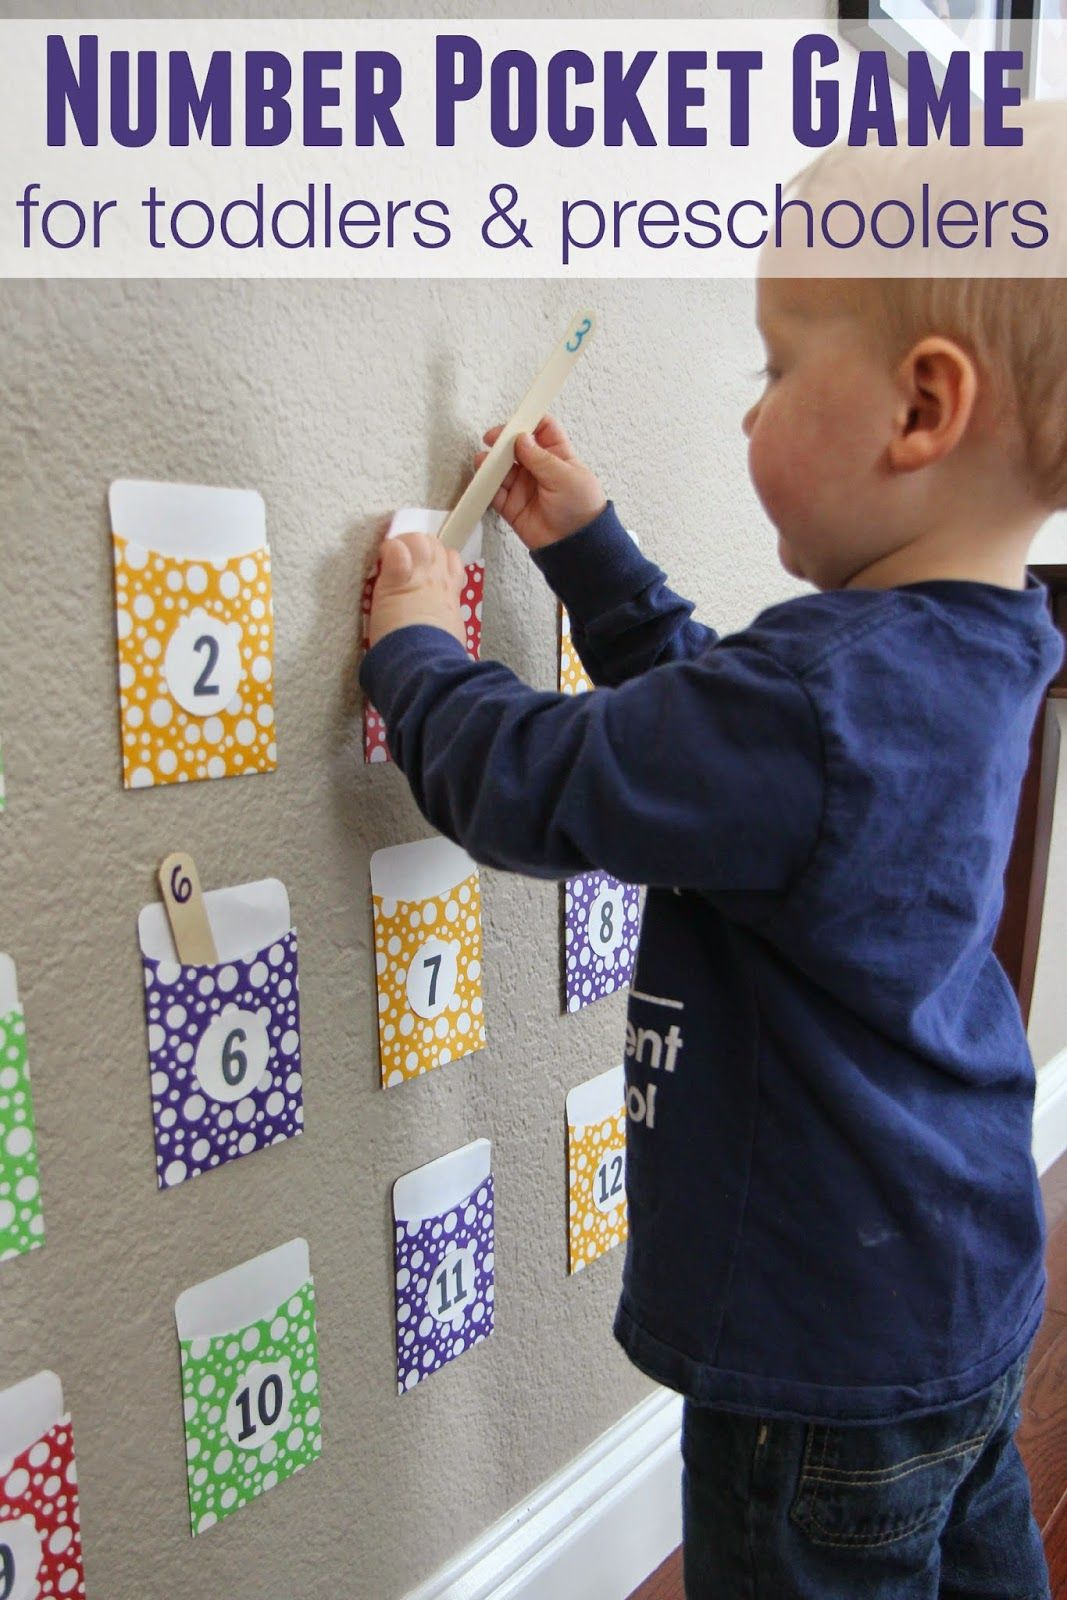 Number Pocket Game For Toddlers And Preschoolers